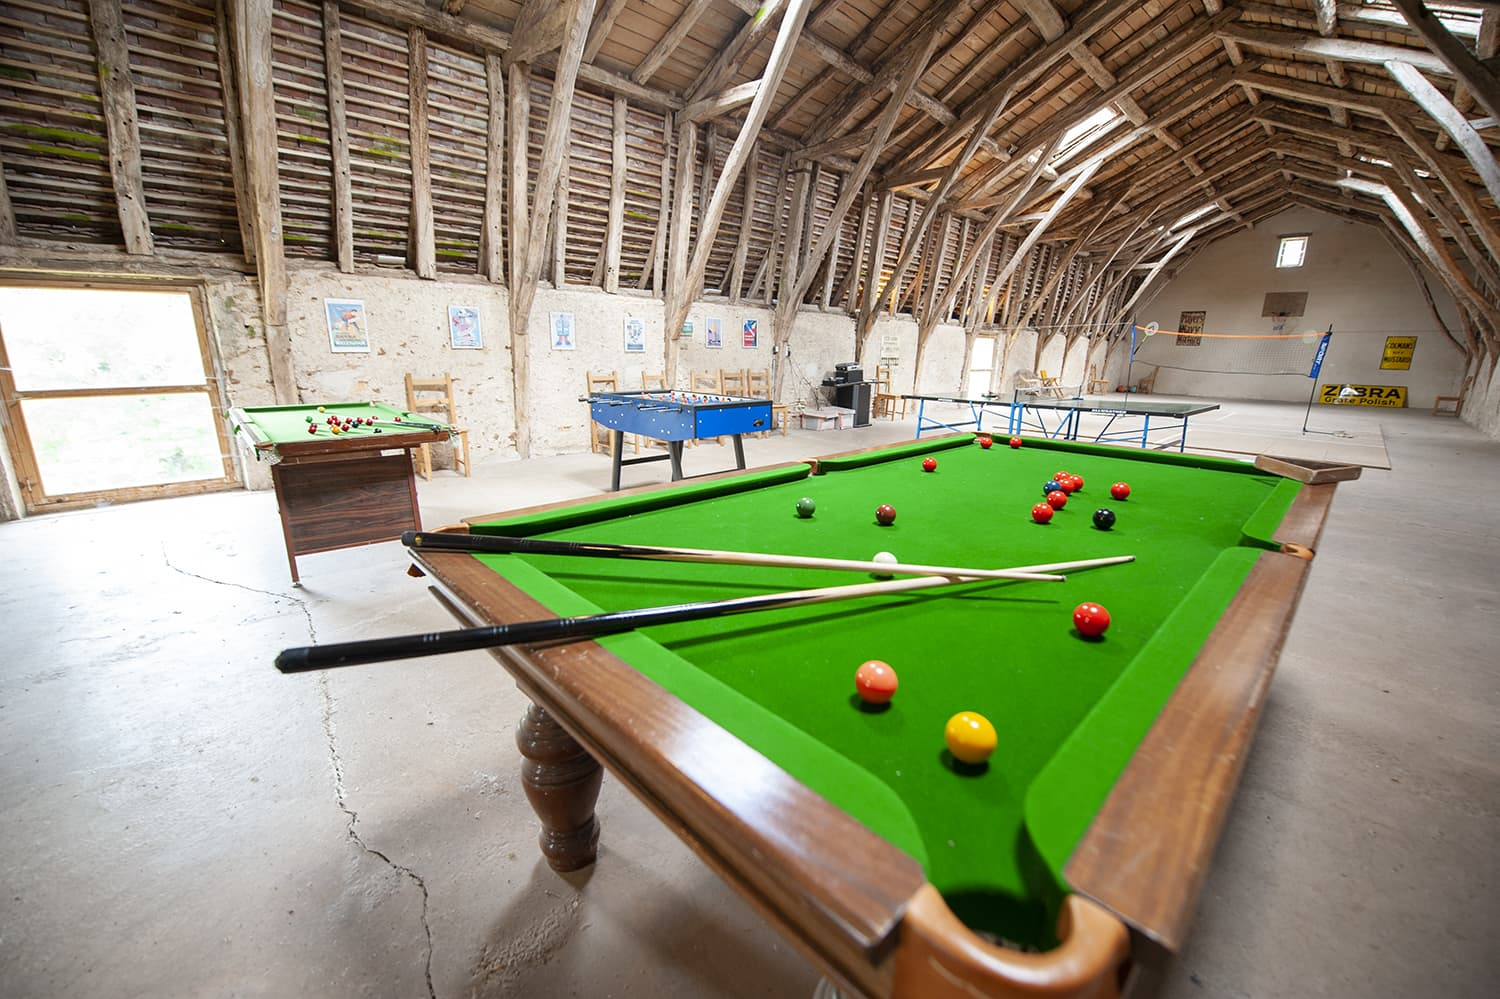 Snooker table in barn